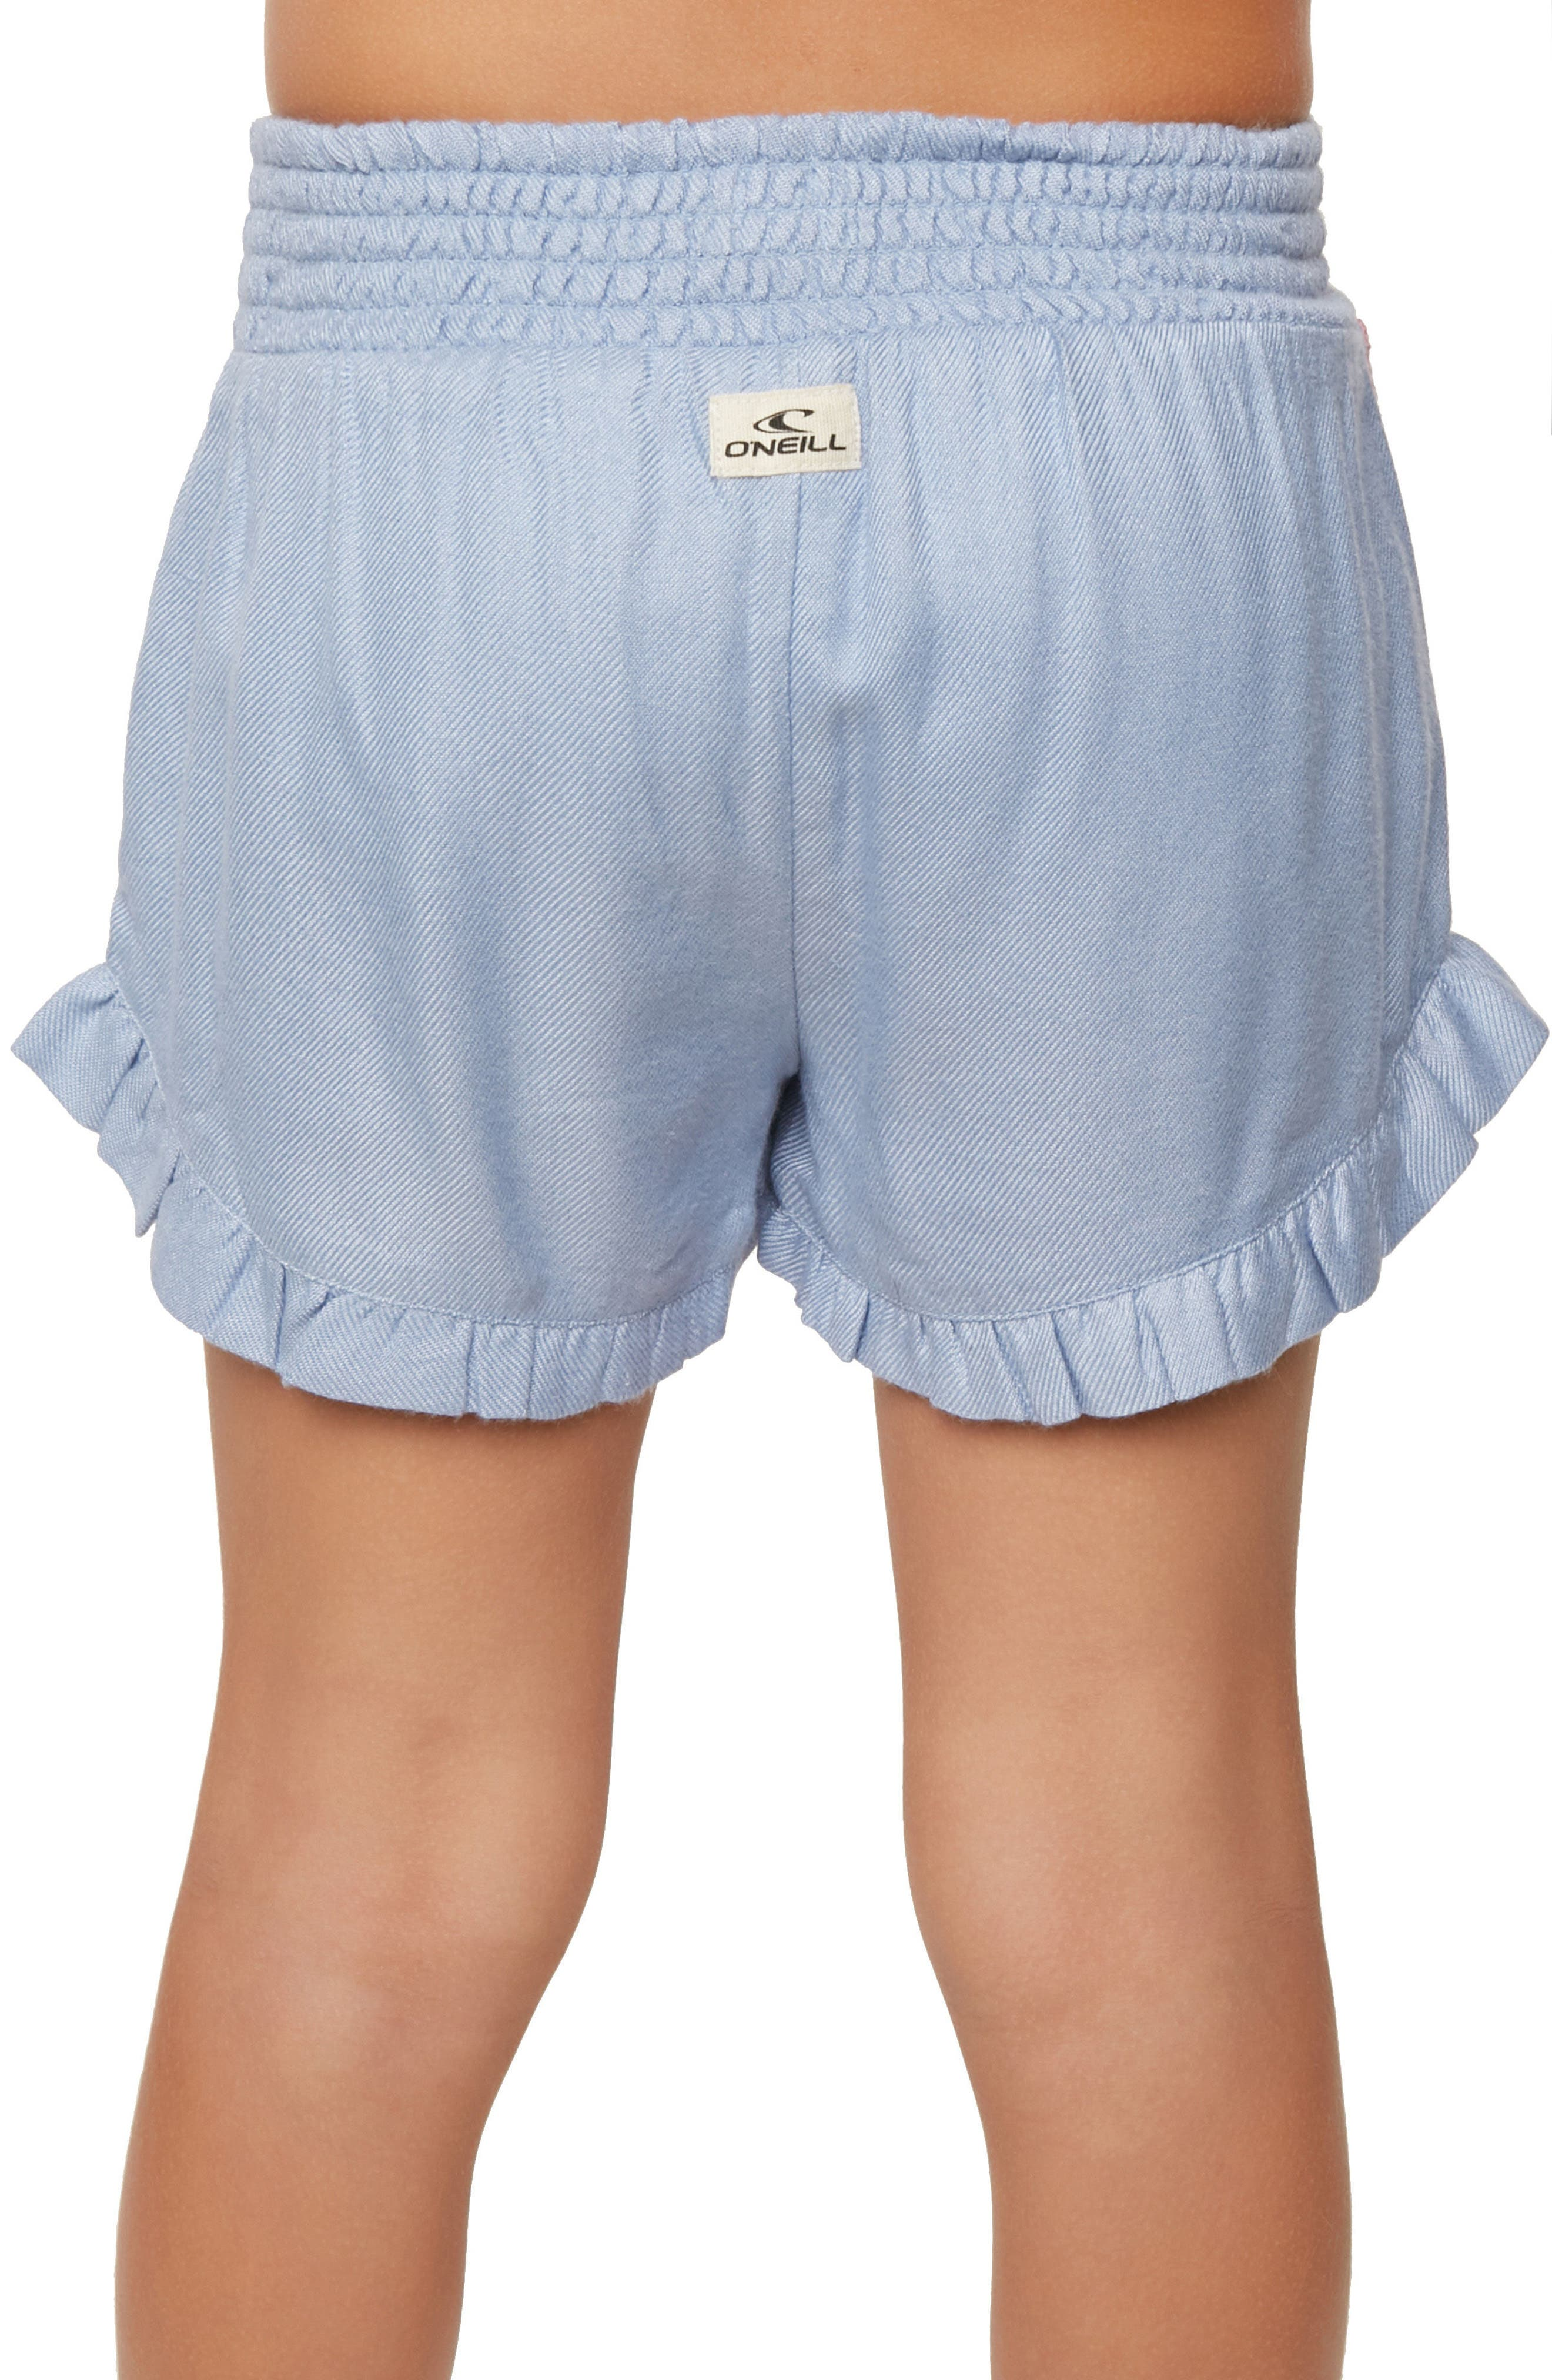 Bay Ruffle Shorts,                             Alternate thumbnail 2, color,                             Bleached Periwinkle